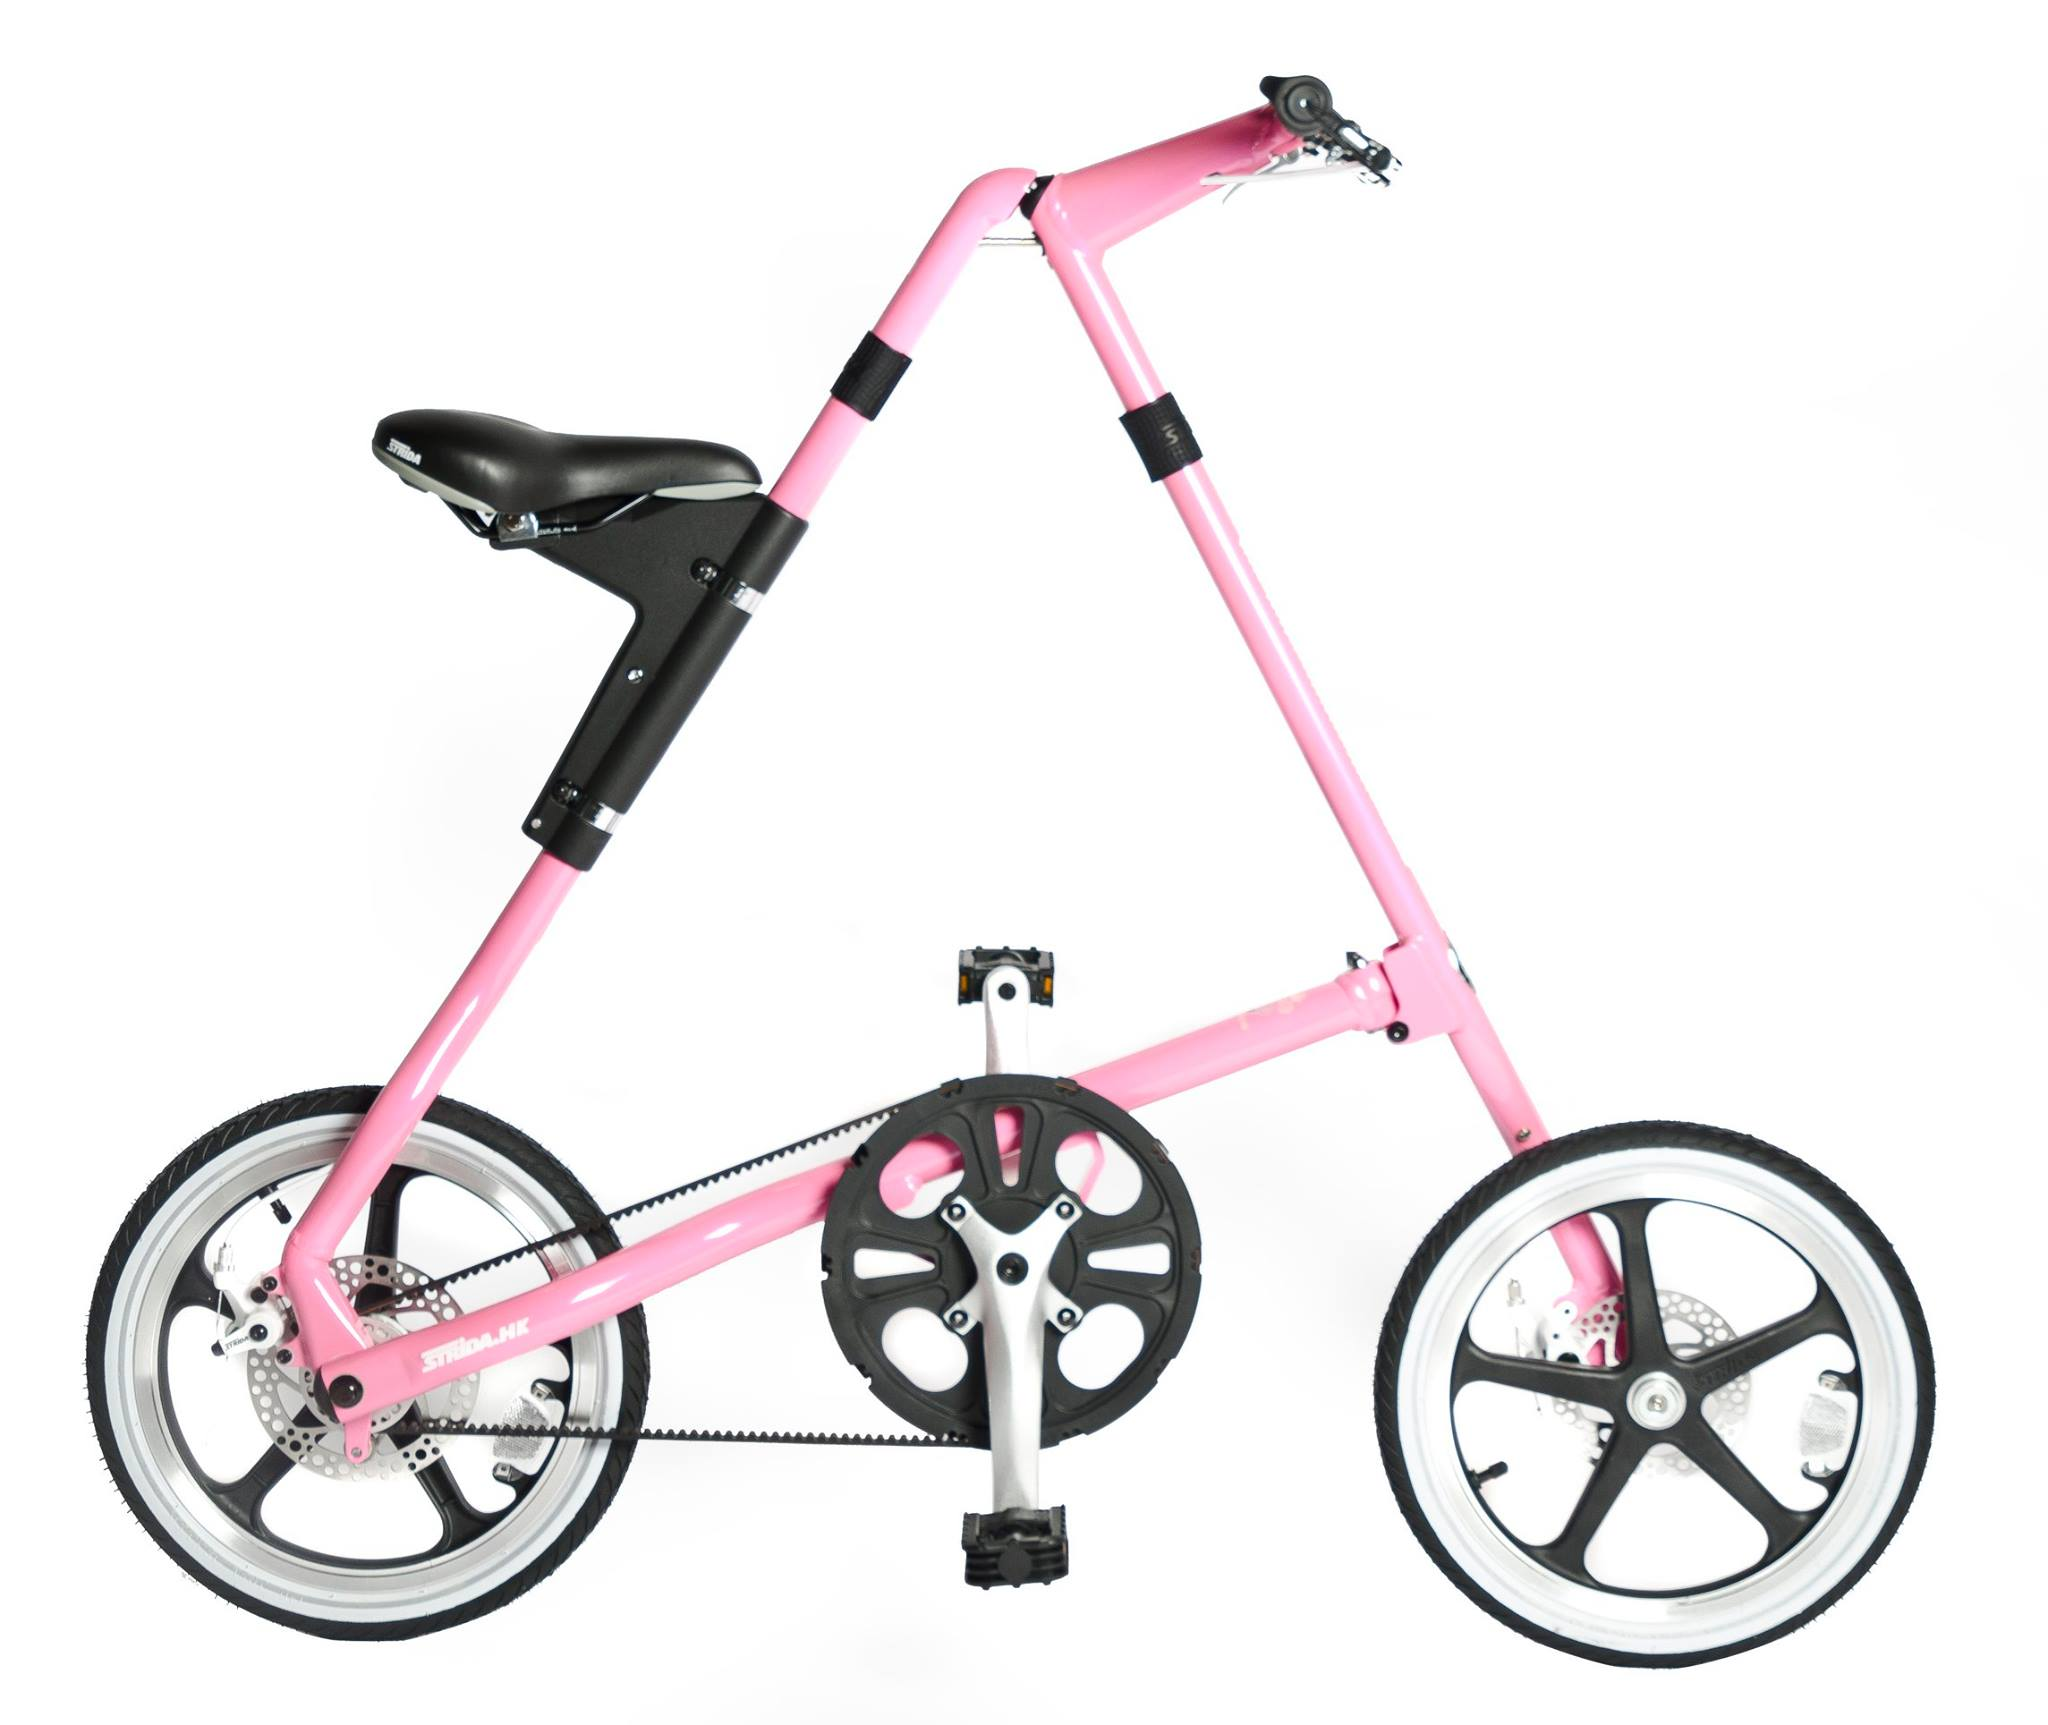 STRiDA LT Pink strida lt STRiDA LT 12646932 931791793581565 2969674635146565949 o